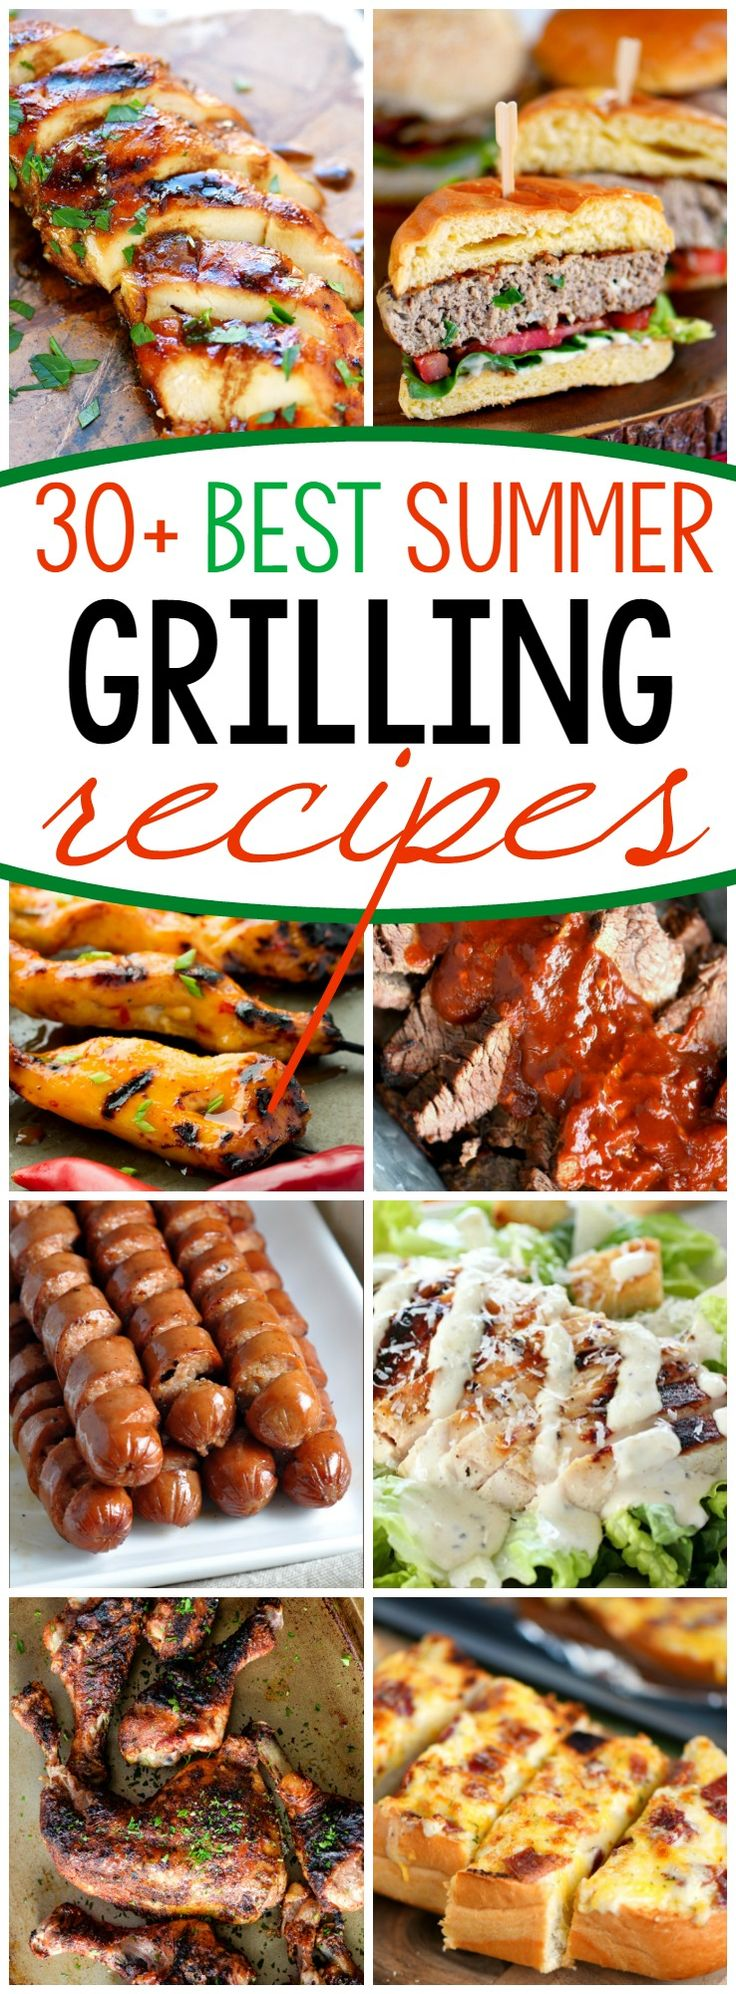 It's too hot to cook indoors! Fire up that grill and try one of these 31 Grilling Recipes for Summer! Your air conditioning bill will thank you.: